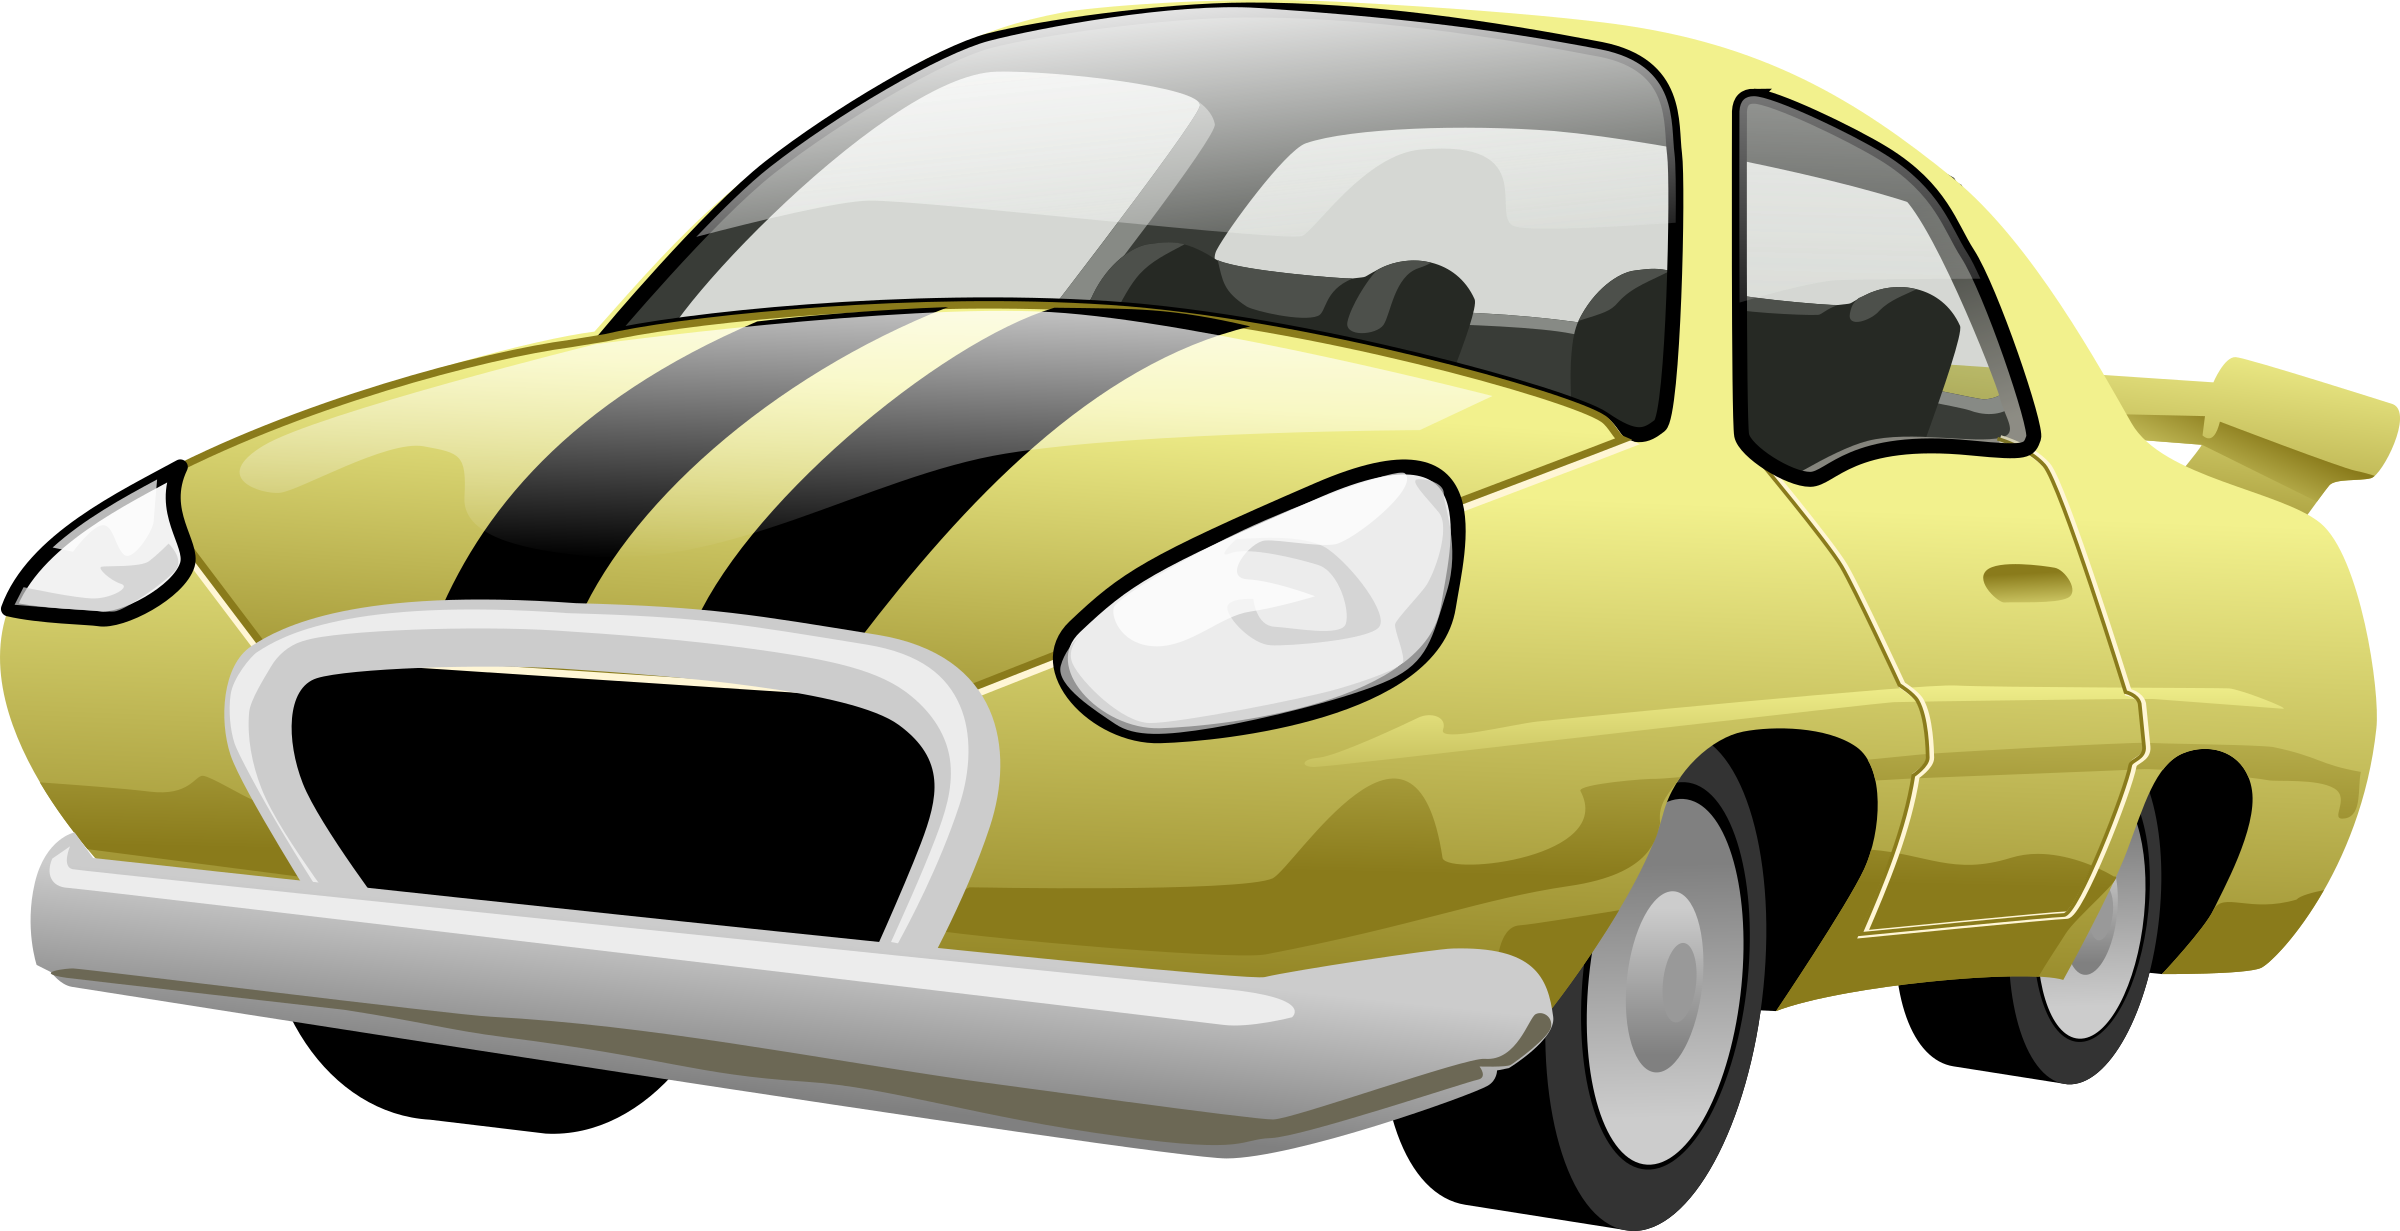 Cartoon car png. Sports transparent images all